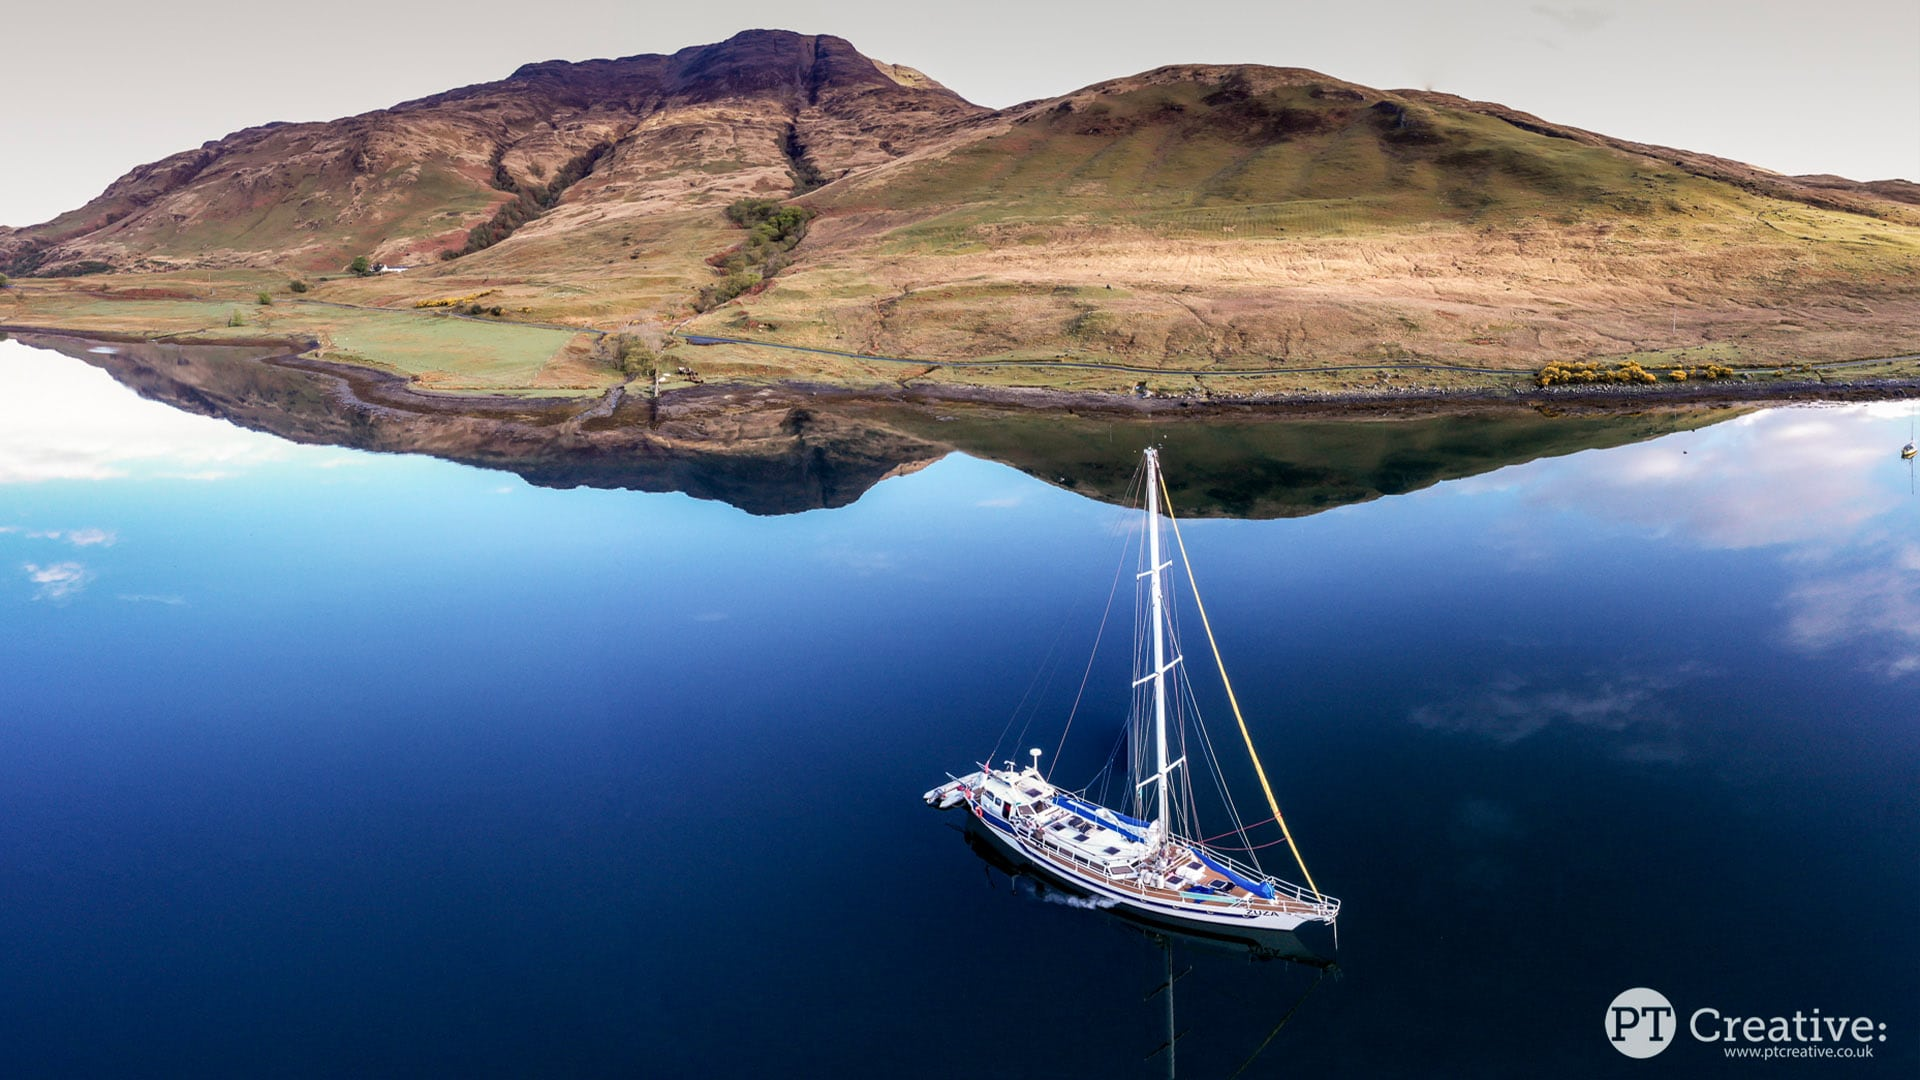 Trek and sail zuza scotland